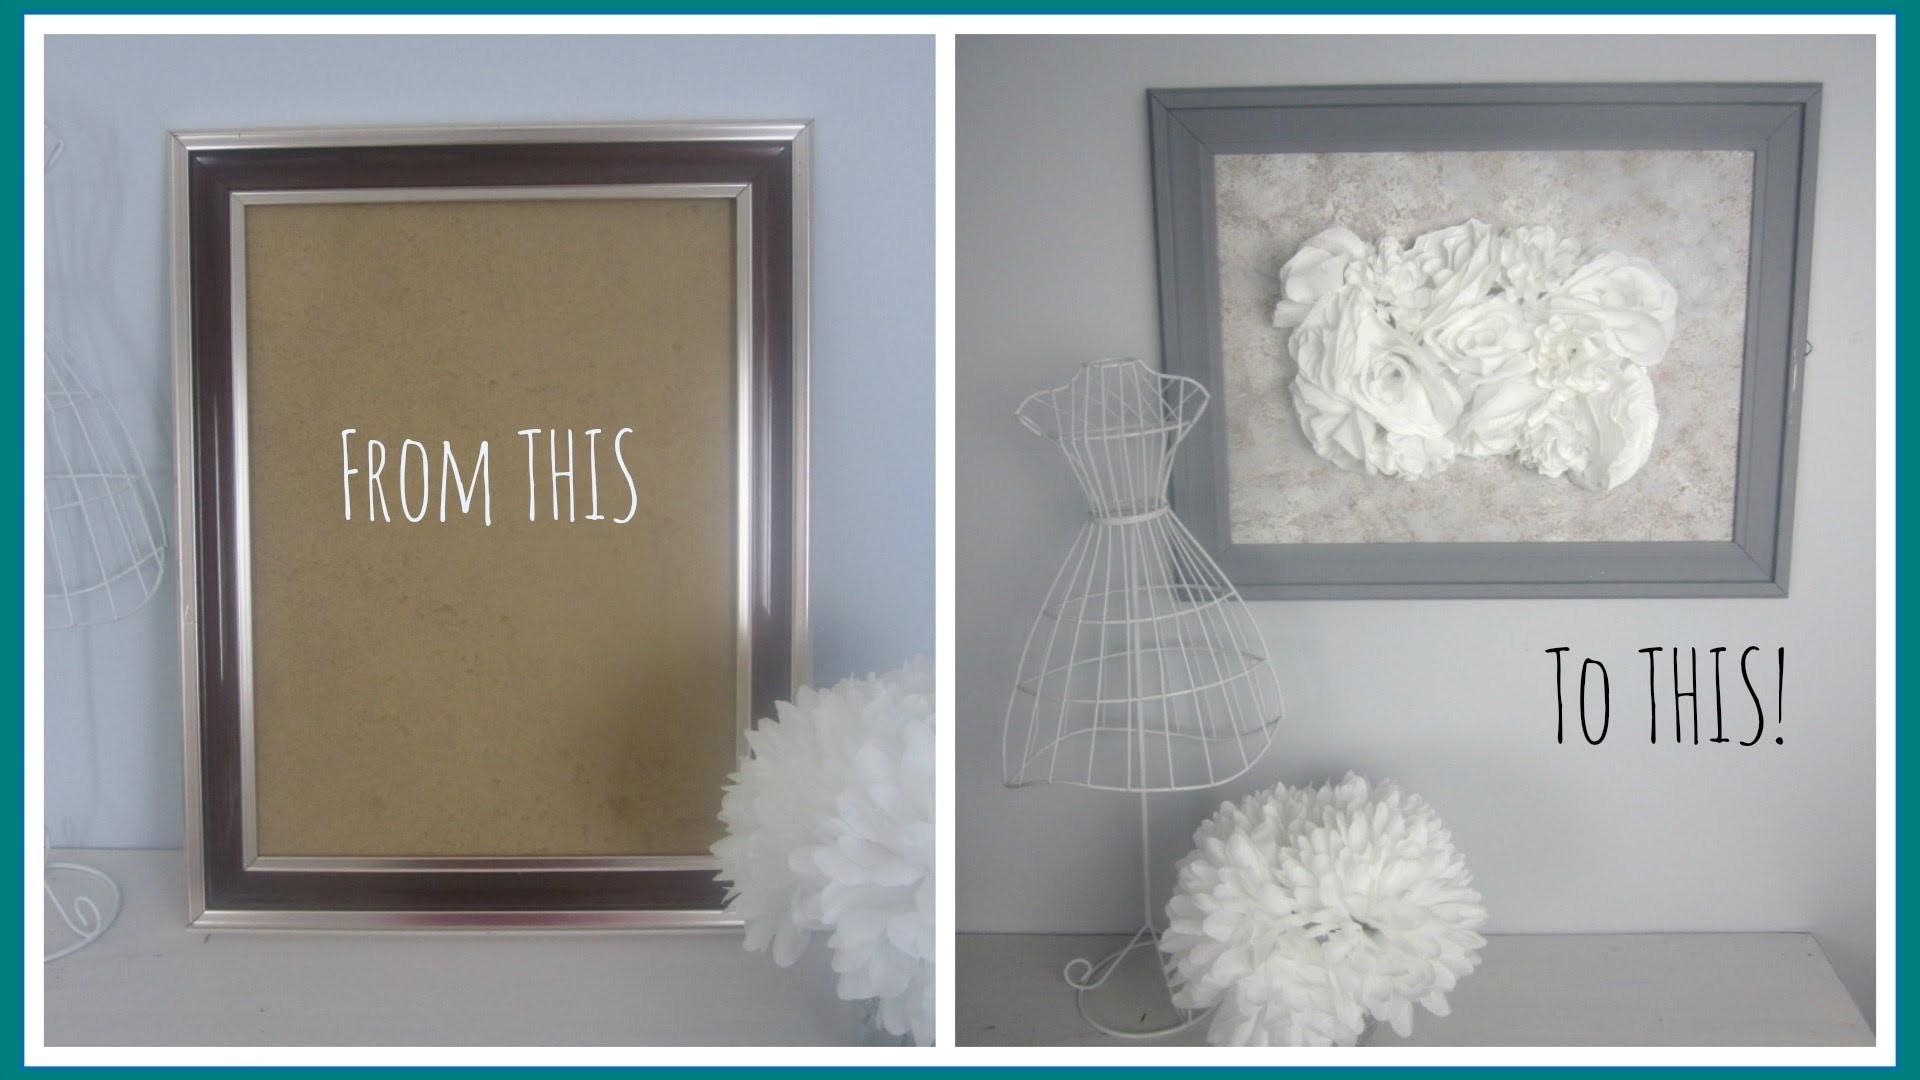 Diy Decor Outdated Frame Vintage Inspired Art